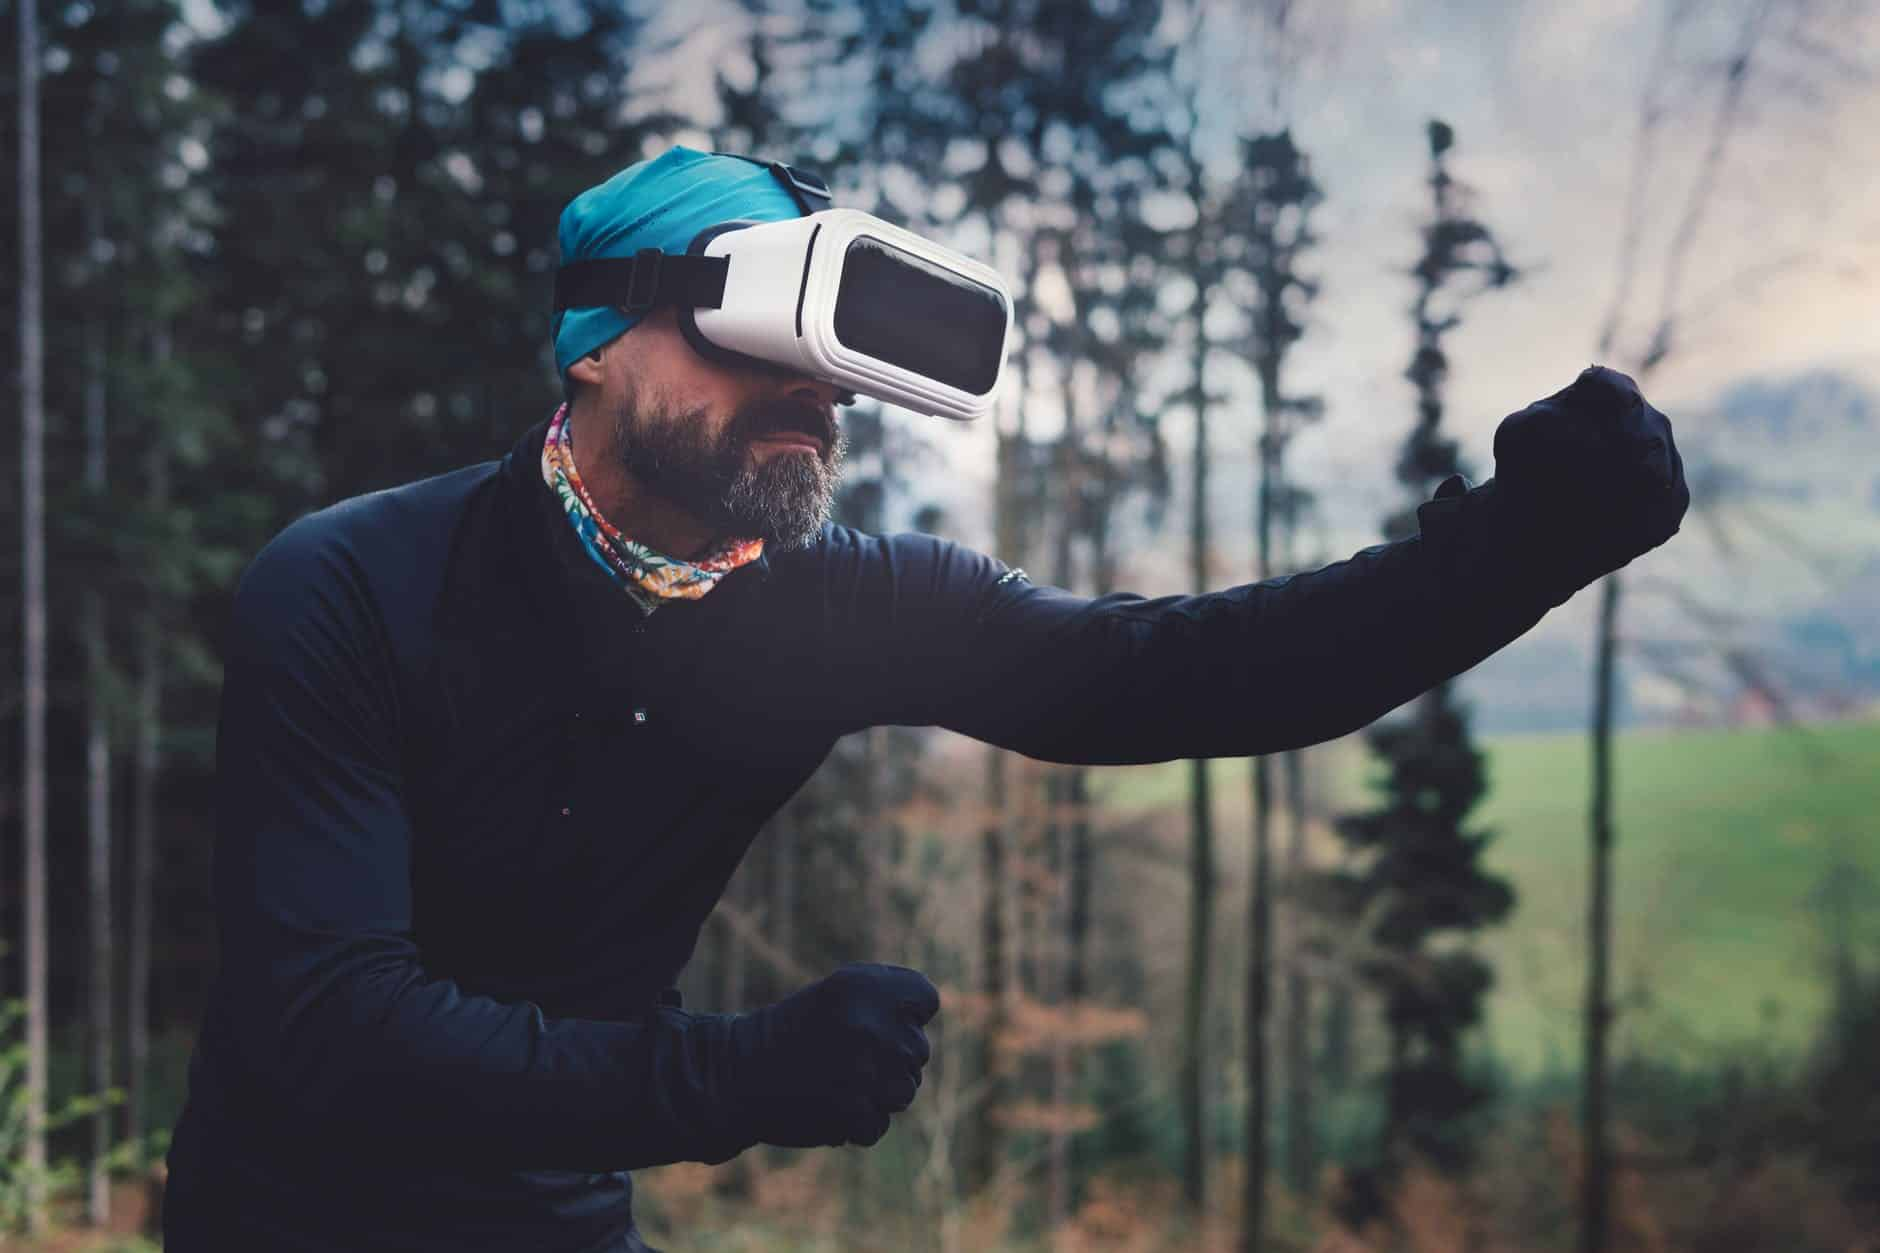 VR 360: The New Magical Experience!